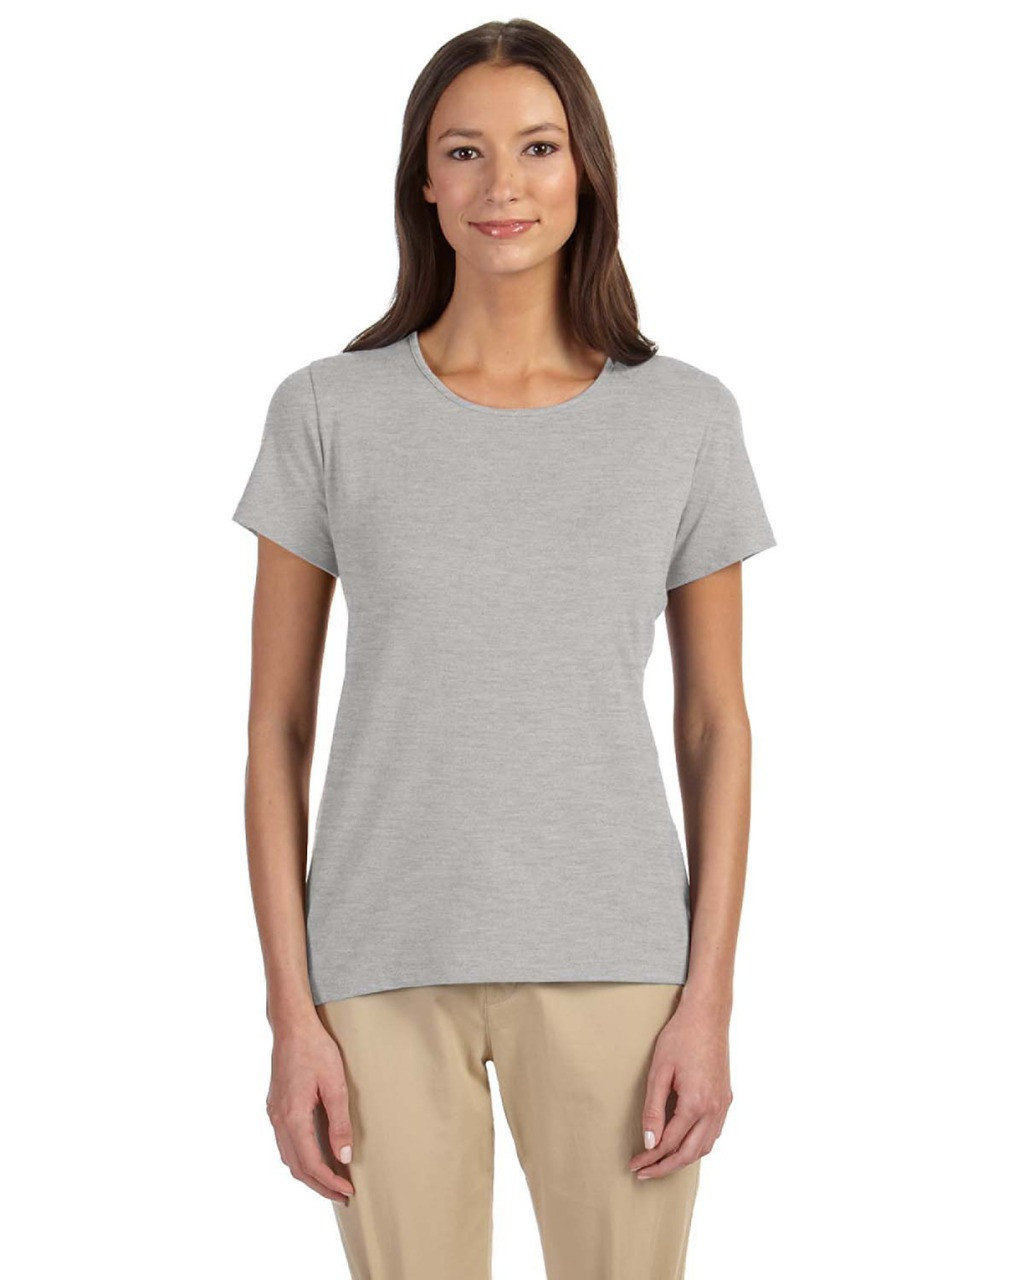 Grey Heather - DP182W Devon & Jones Ladies' Perfect Fit™ Shell T-Shirt | Blankclothing.ca